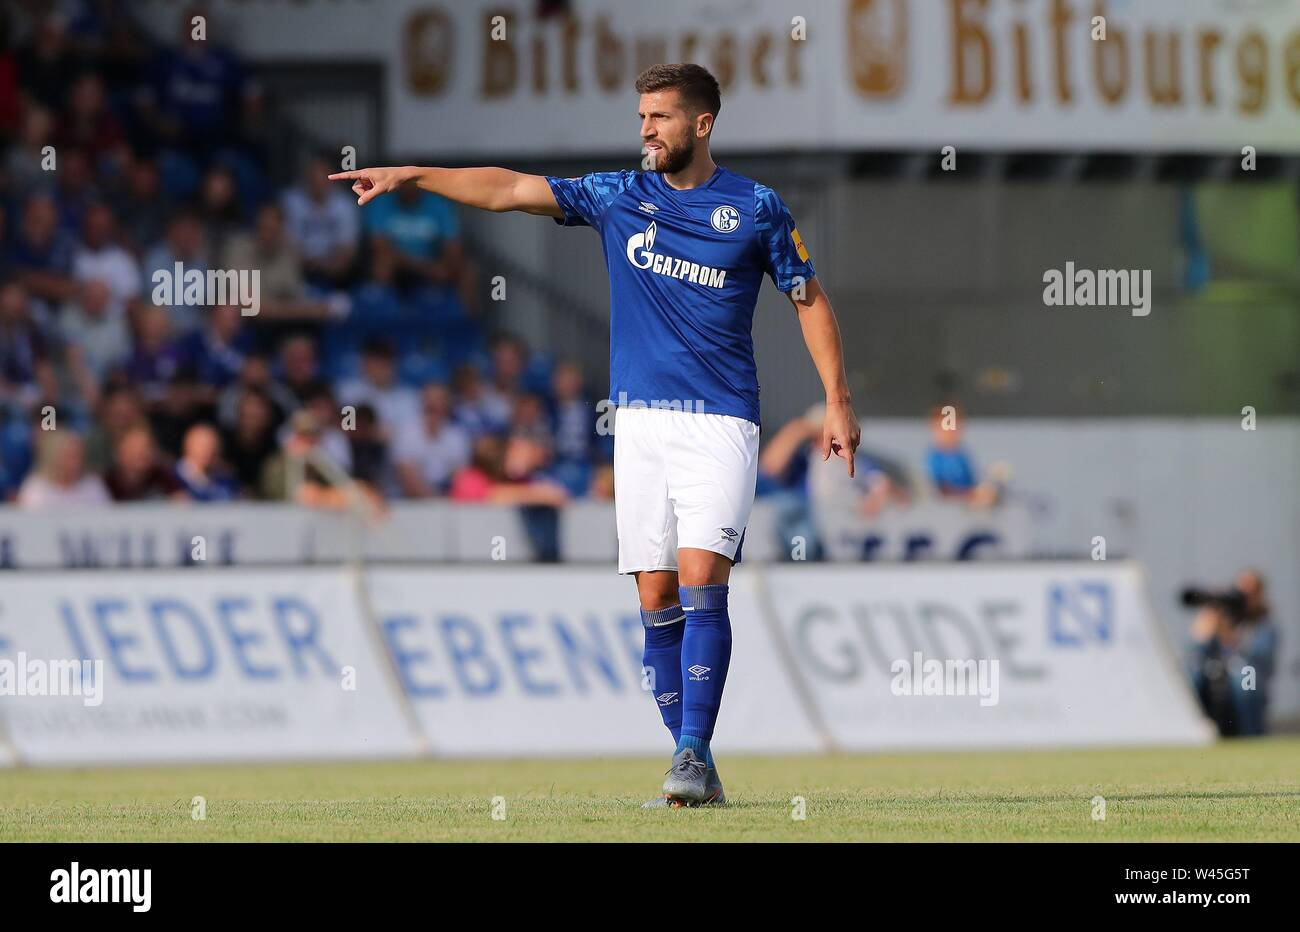 Lotte, Deutschland. 19th July, 2019. firo: 19.07.2019, football, 1.Bundesliga, season 2019/2020, friendly match, FC Schalke 04 - Norwich City MATIJA NASTASIC, Schalke, gesture | usage worldwide Credit: dpa/Alamy Live News - Stock Image